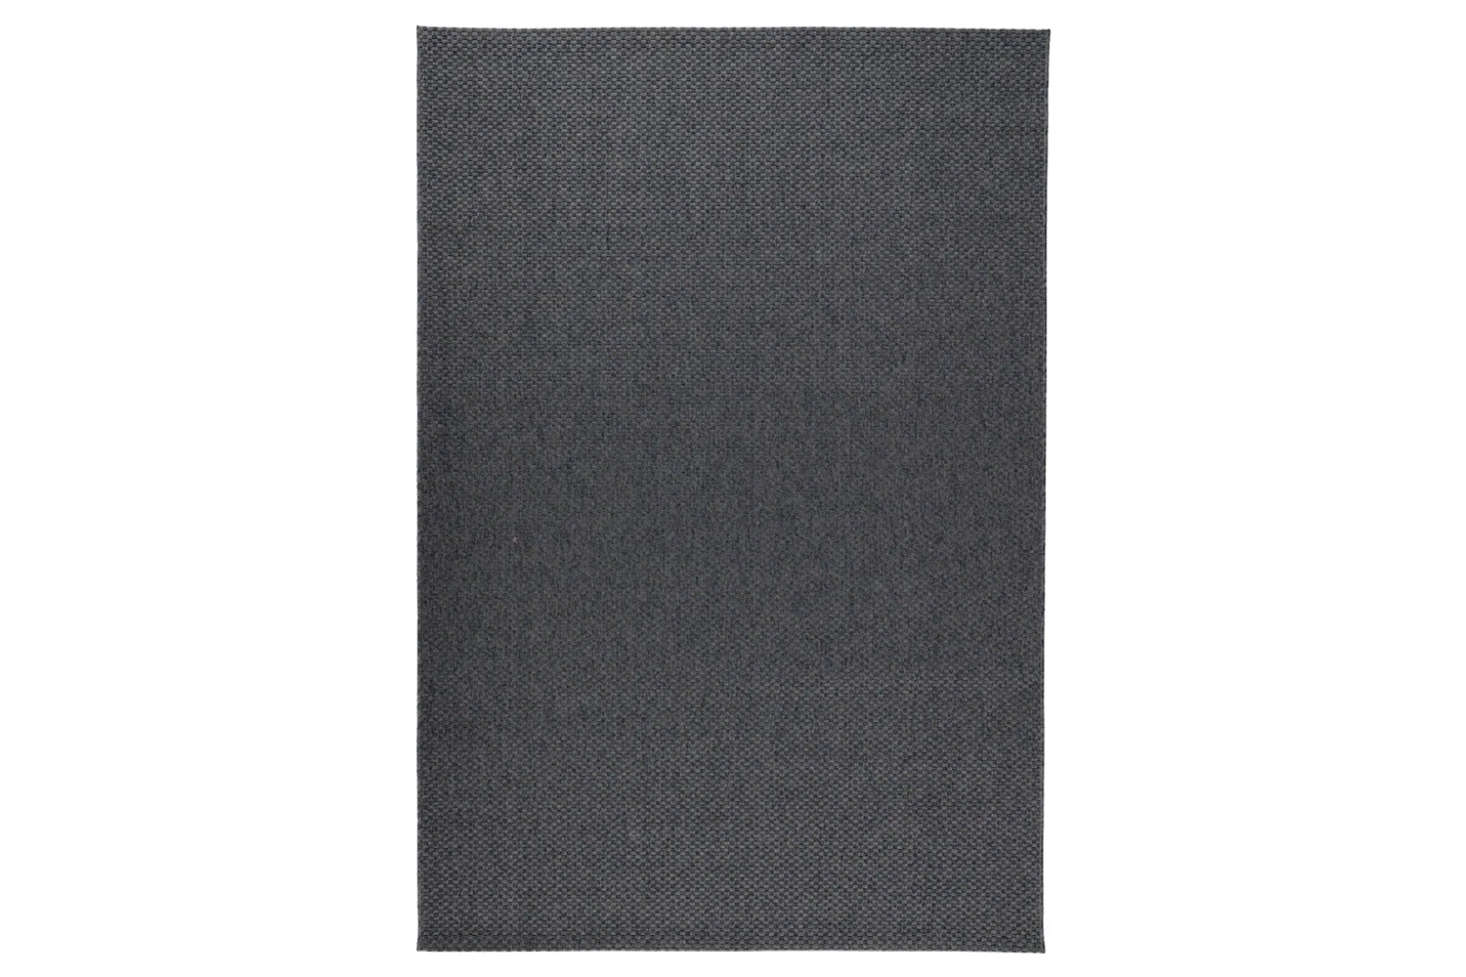 The IKEA Morum Flatweave Rug comes in only up to a size 6&#8